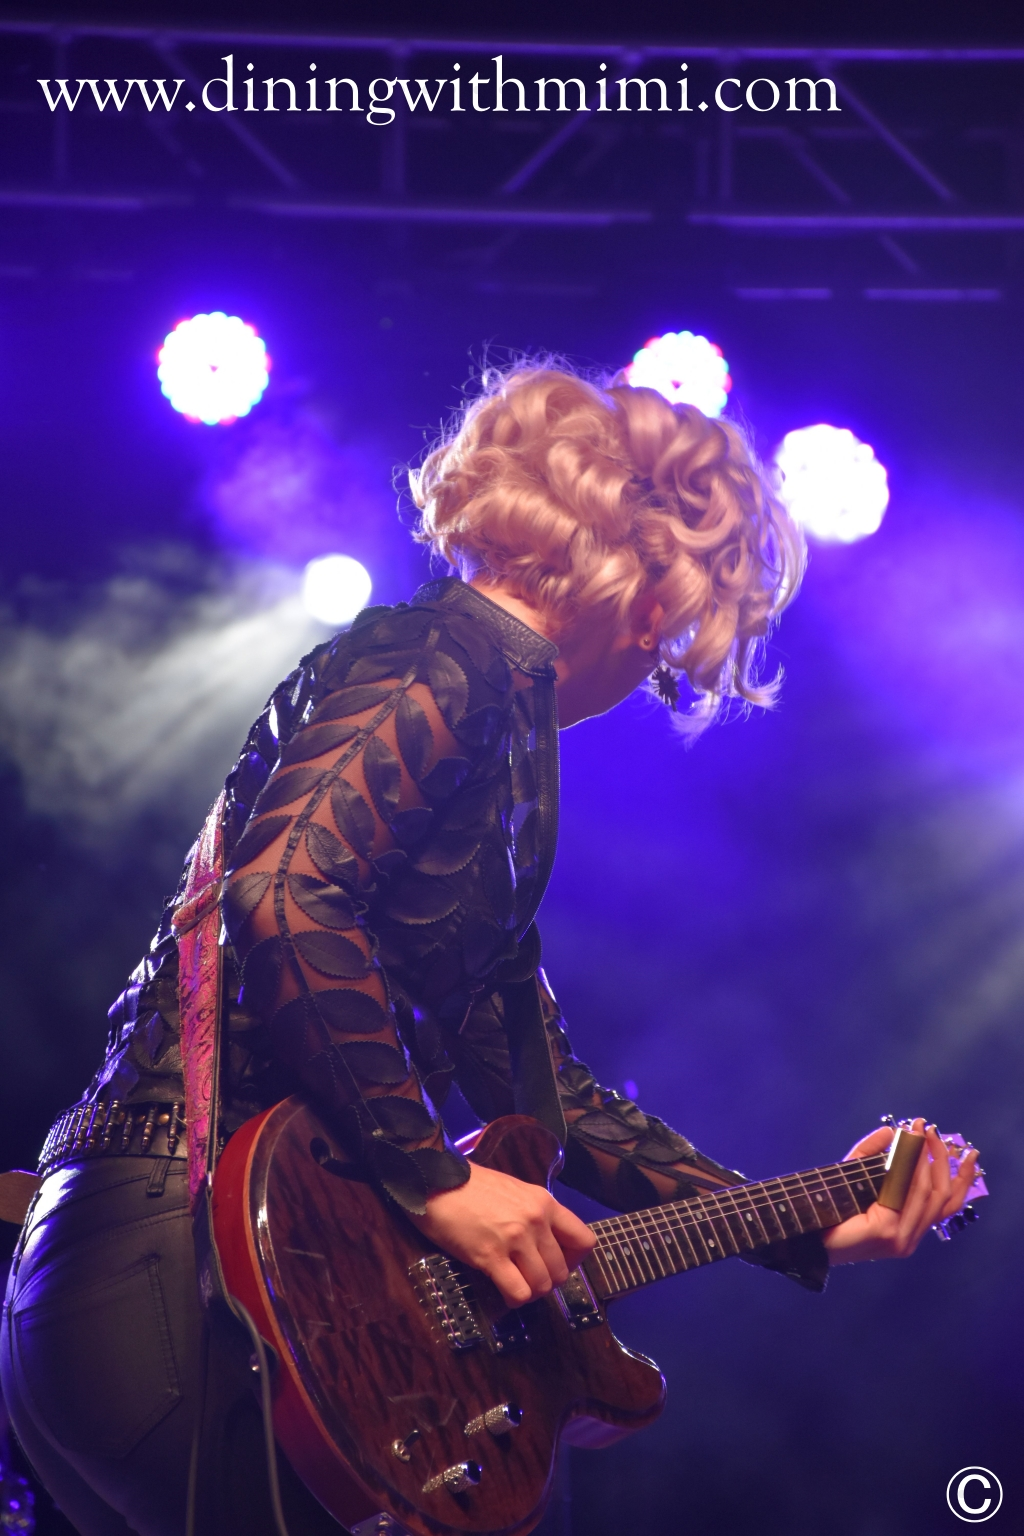 Brains, Beauty and Slaying a guitar as Samantha Fish